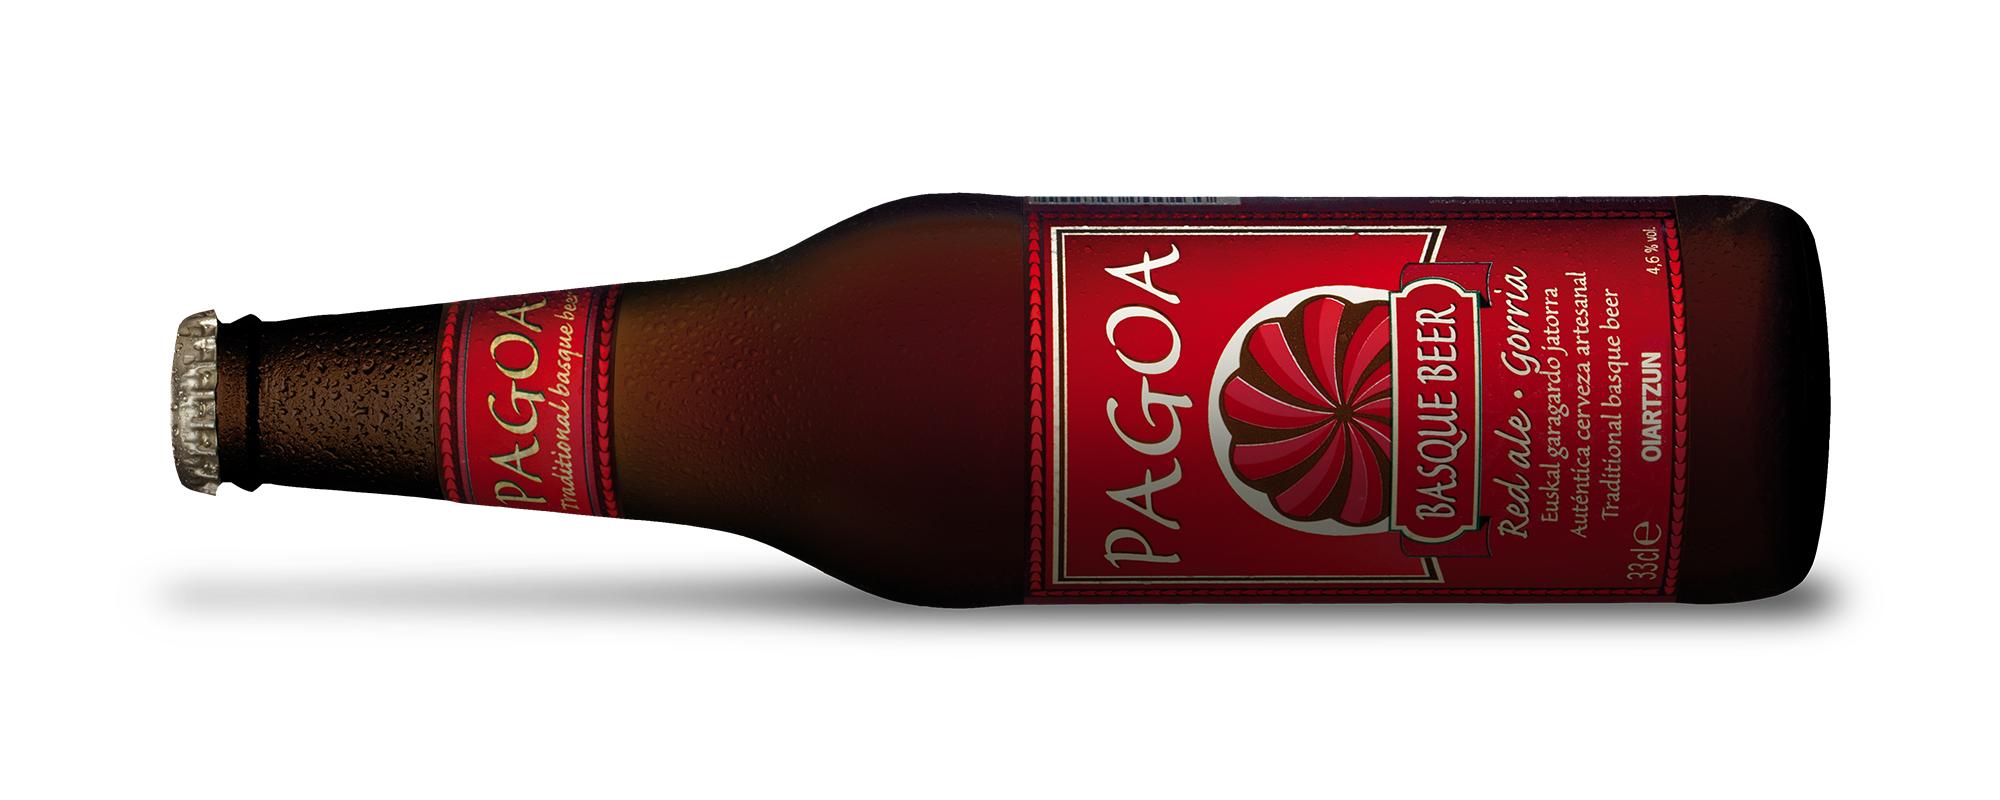 Pagoa Basque Beer Red Ale Gorria